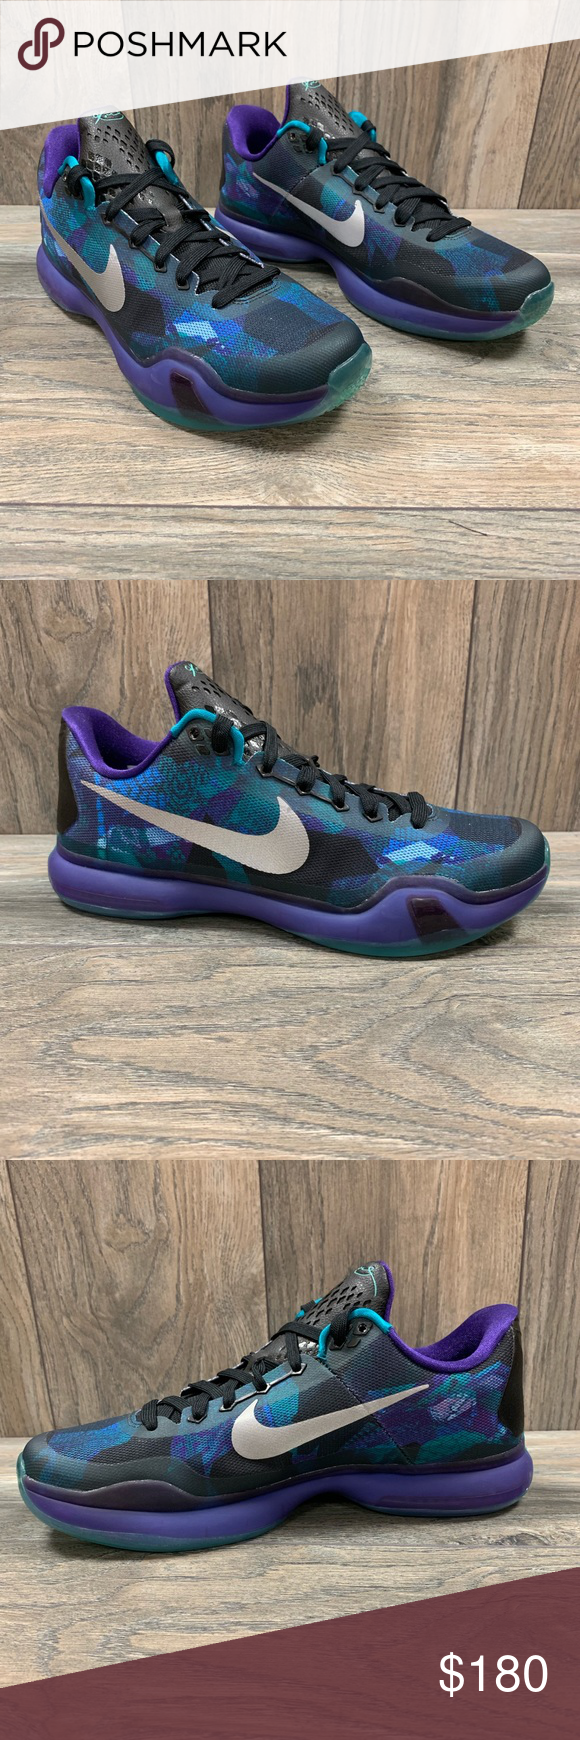 the best attitude 8d291 65654 Nike Kobe X Overcome Emerald Purple Basketball Nike Kobe X Overcome Emerald  Purple Basketball Shoes New without box 705317-305 Release date: 8/27/2015  ...